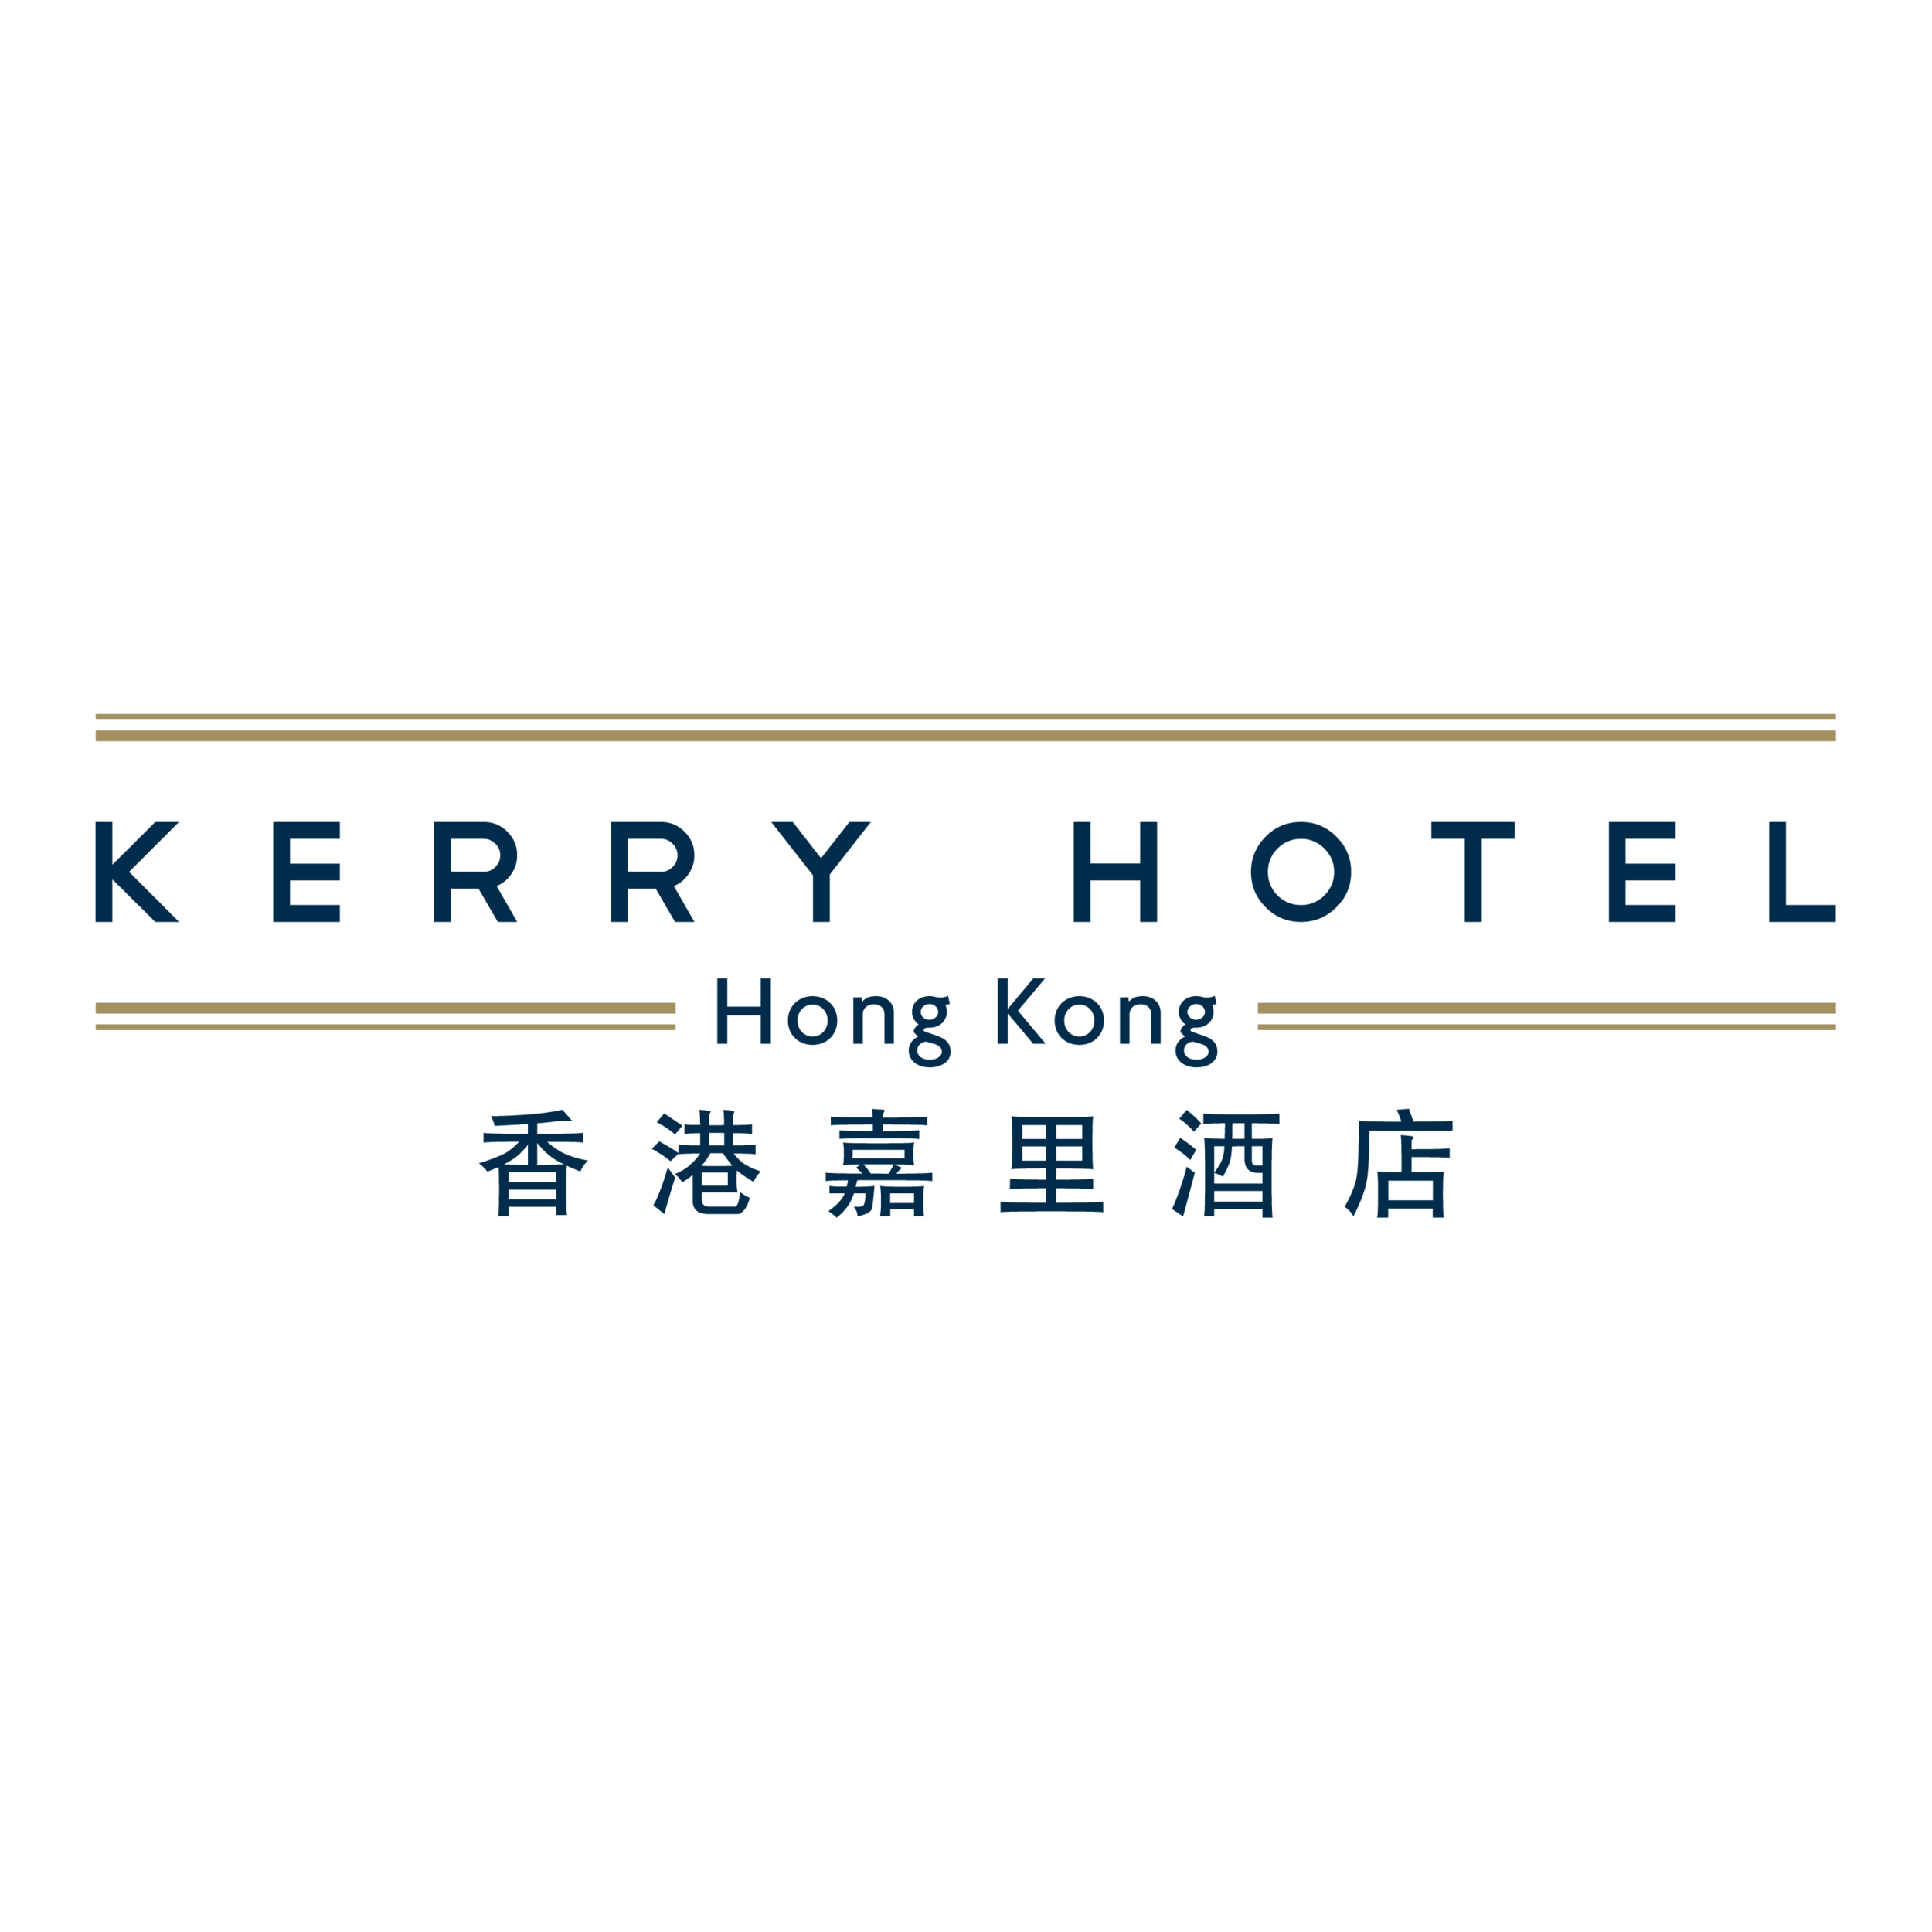 Kerry_hotel.png